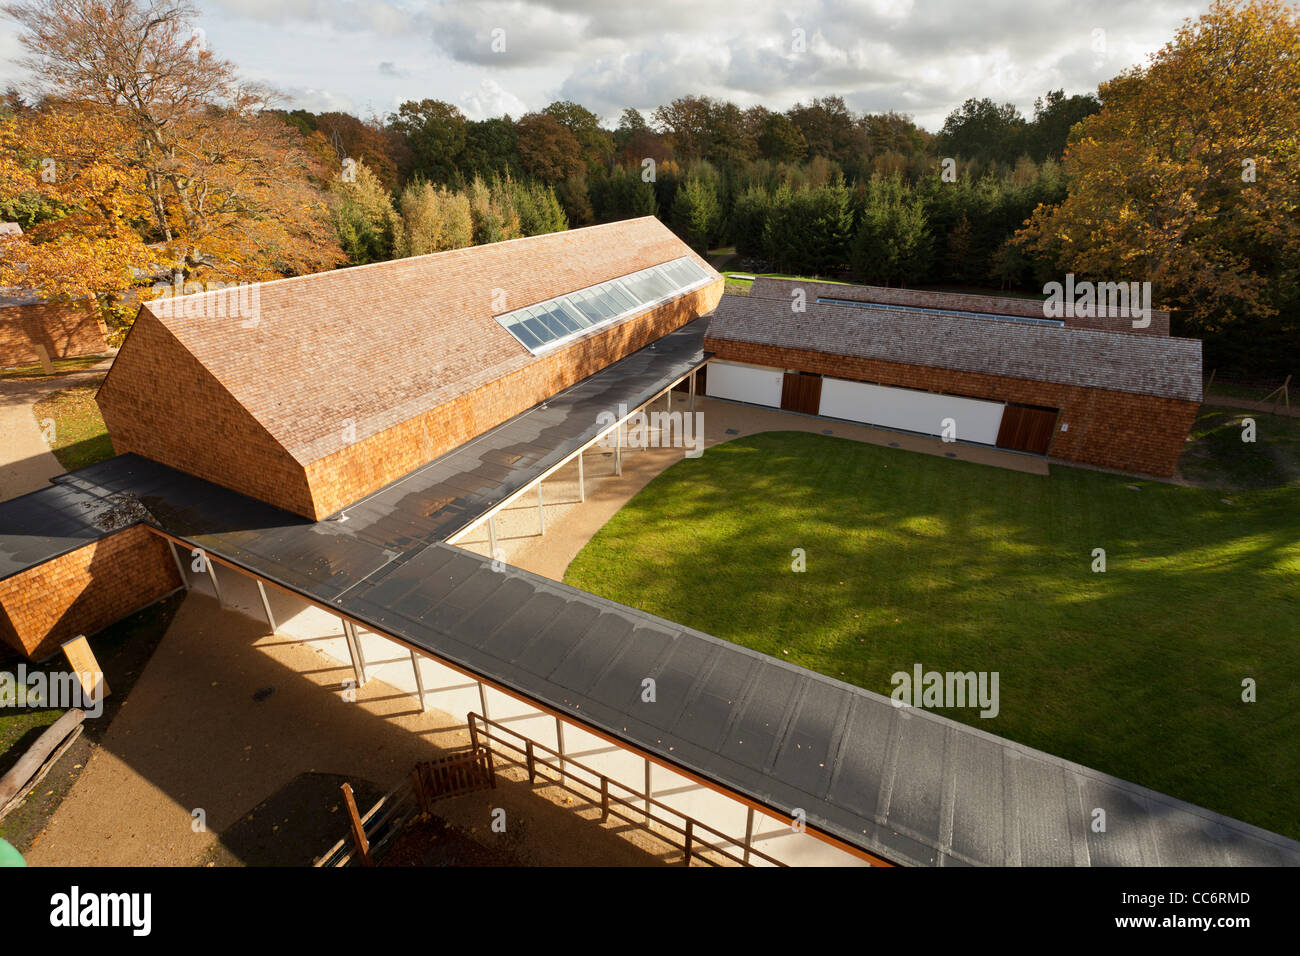 Runways End Outdoor Activity Centre, Farnborough - Stock Image